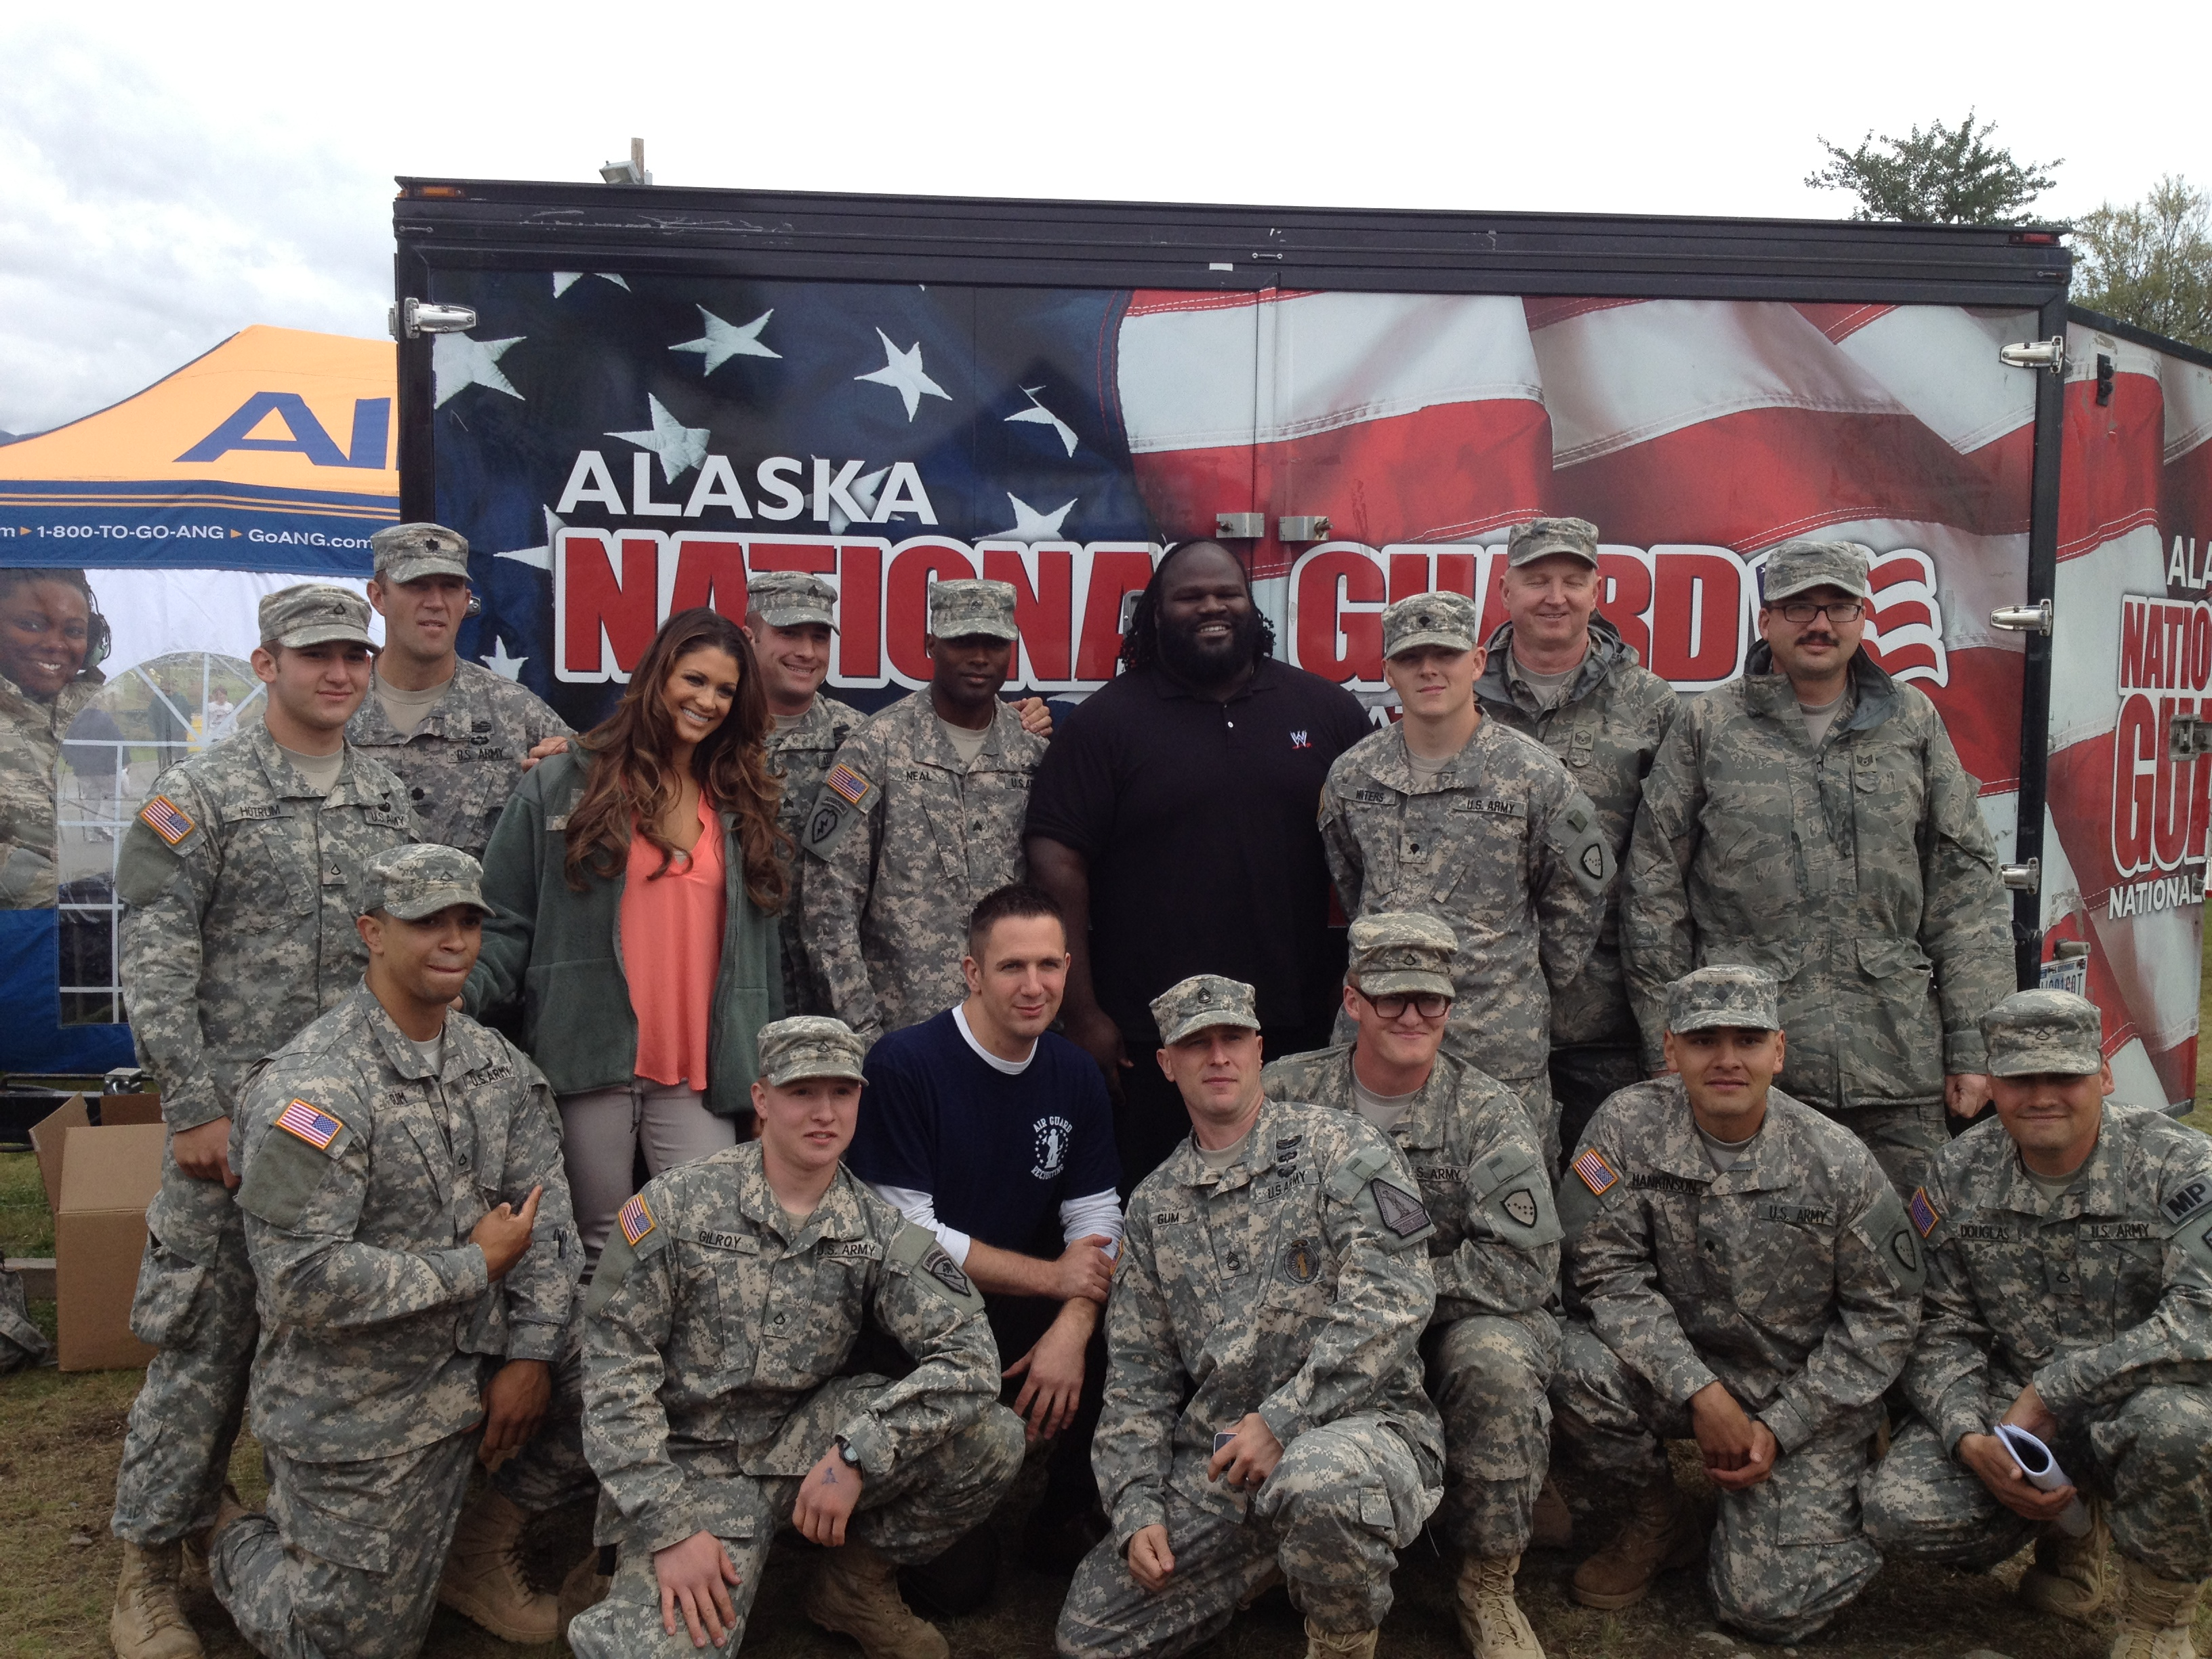 Me with the National Guard!